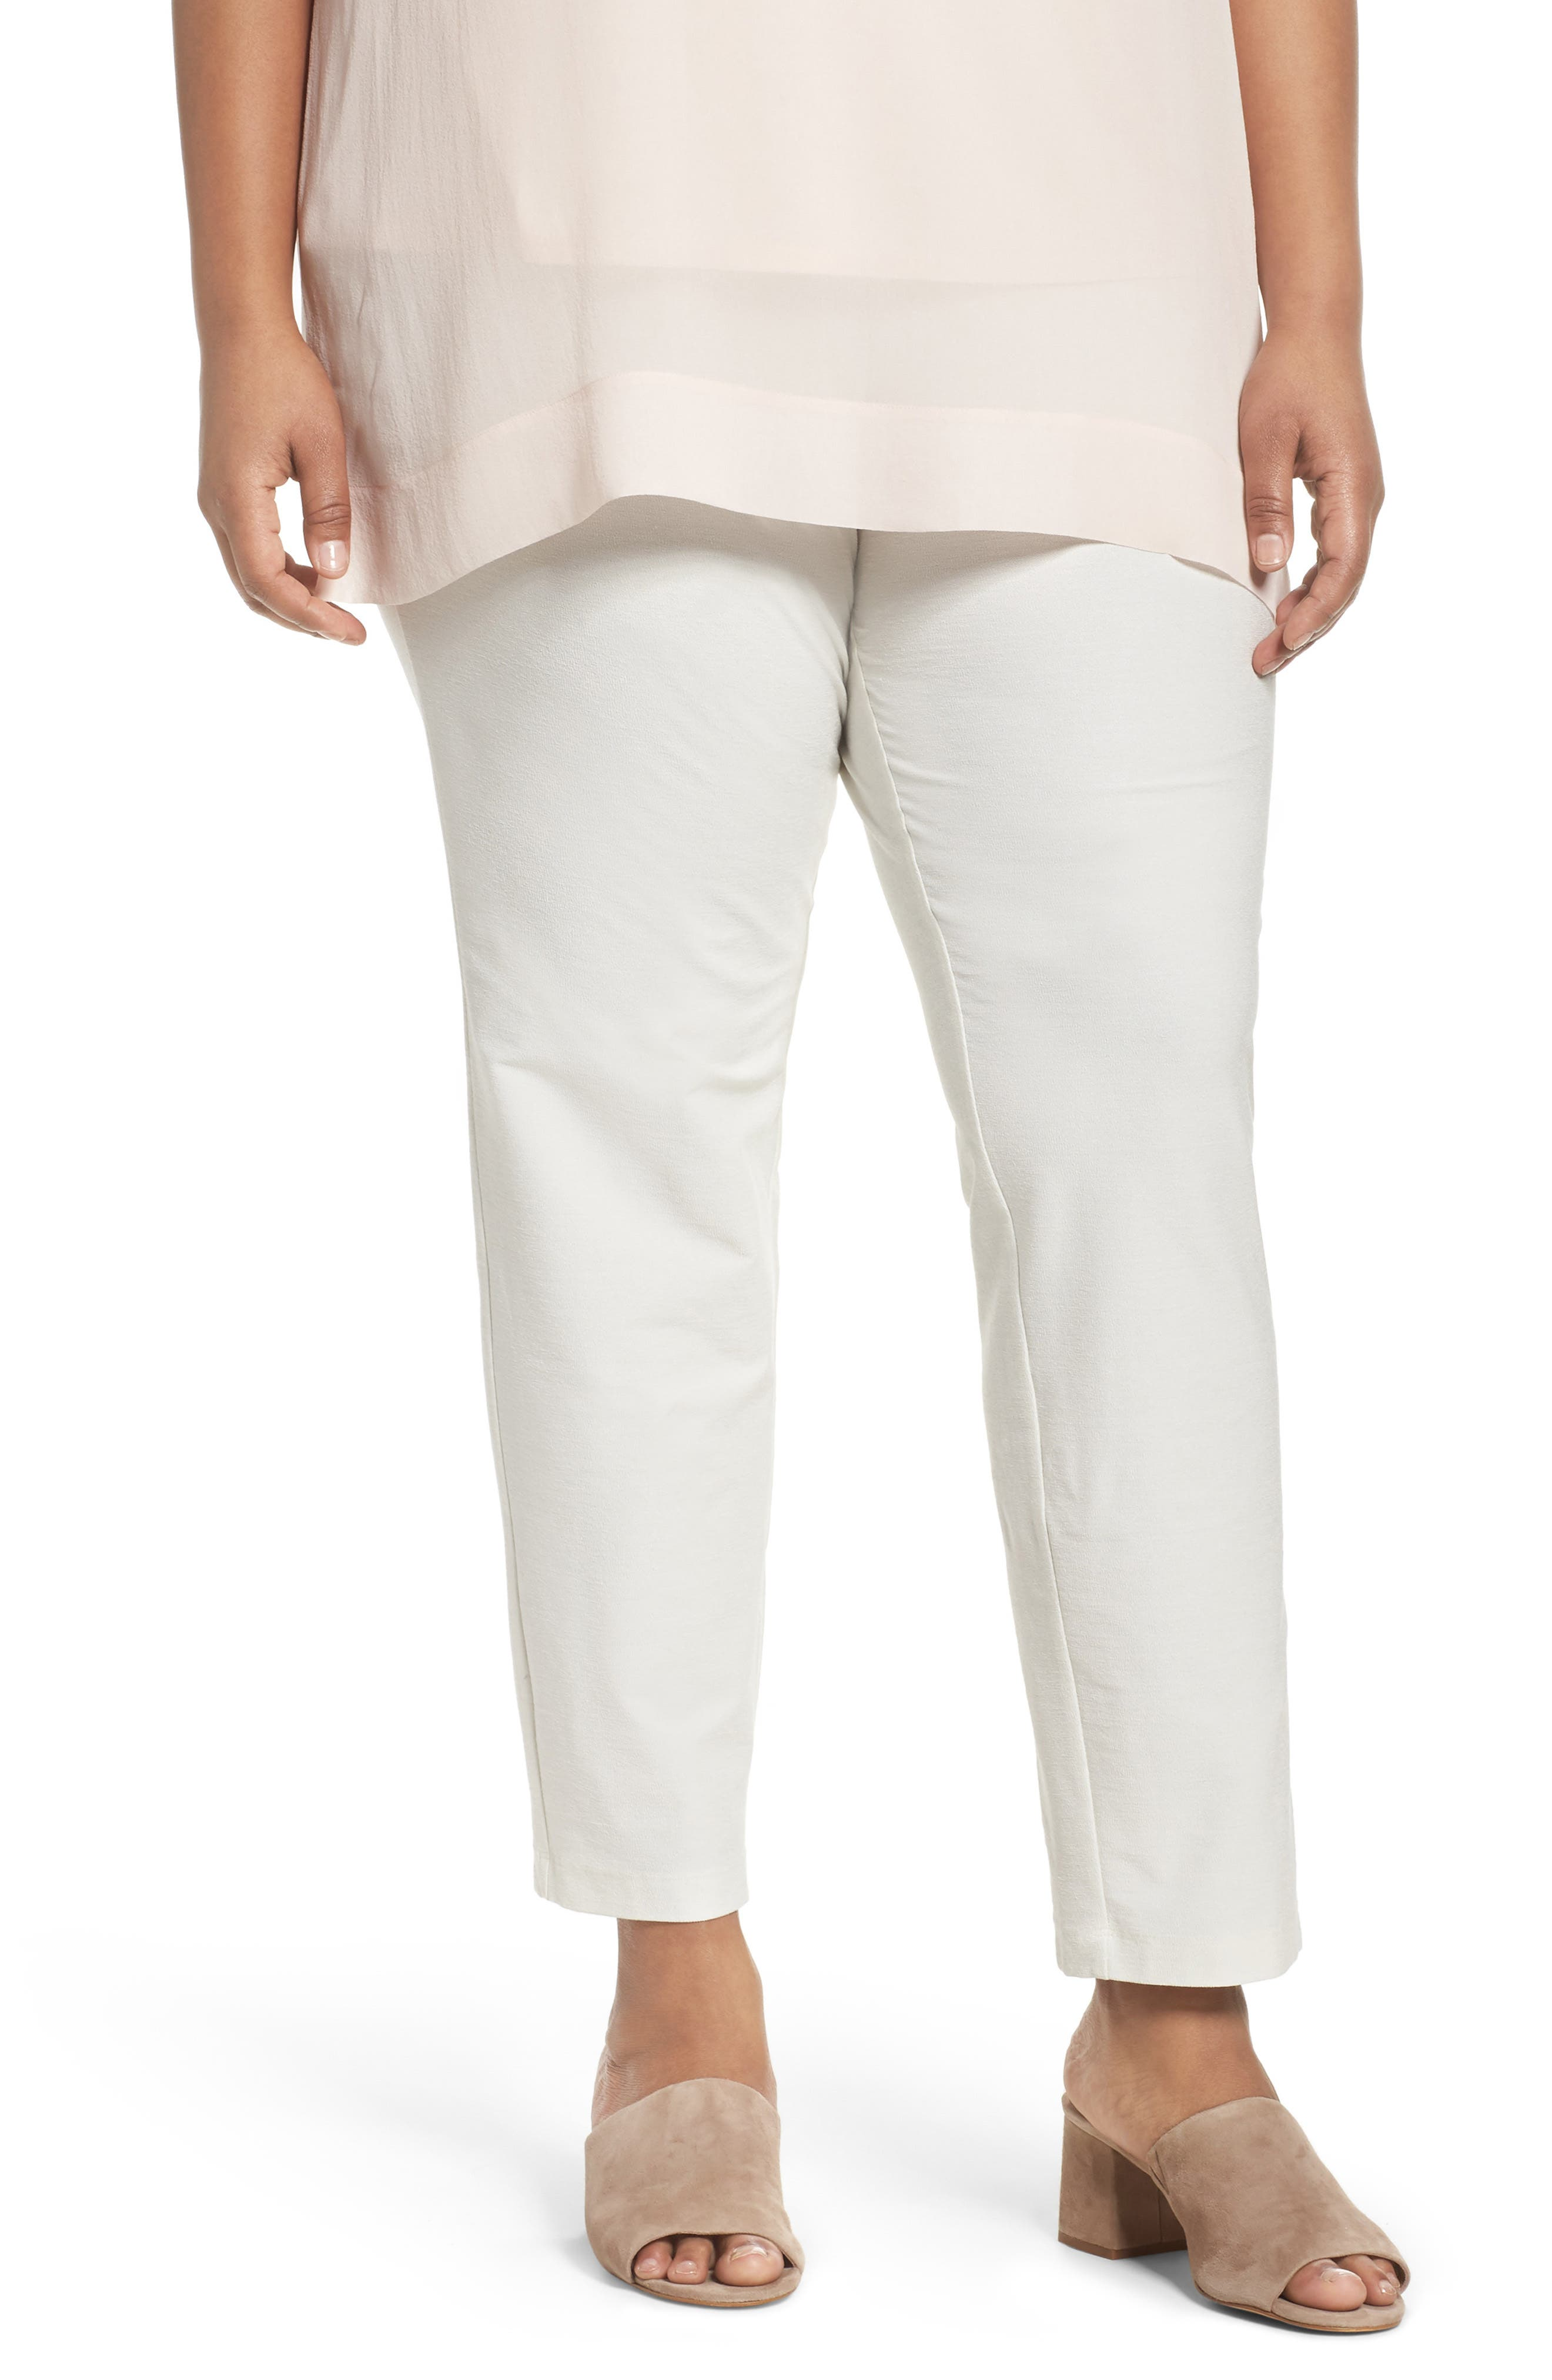 Plus Women's Eileen Fisher Crepe Ankle Pants